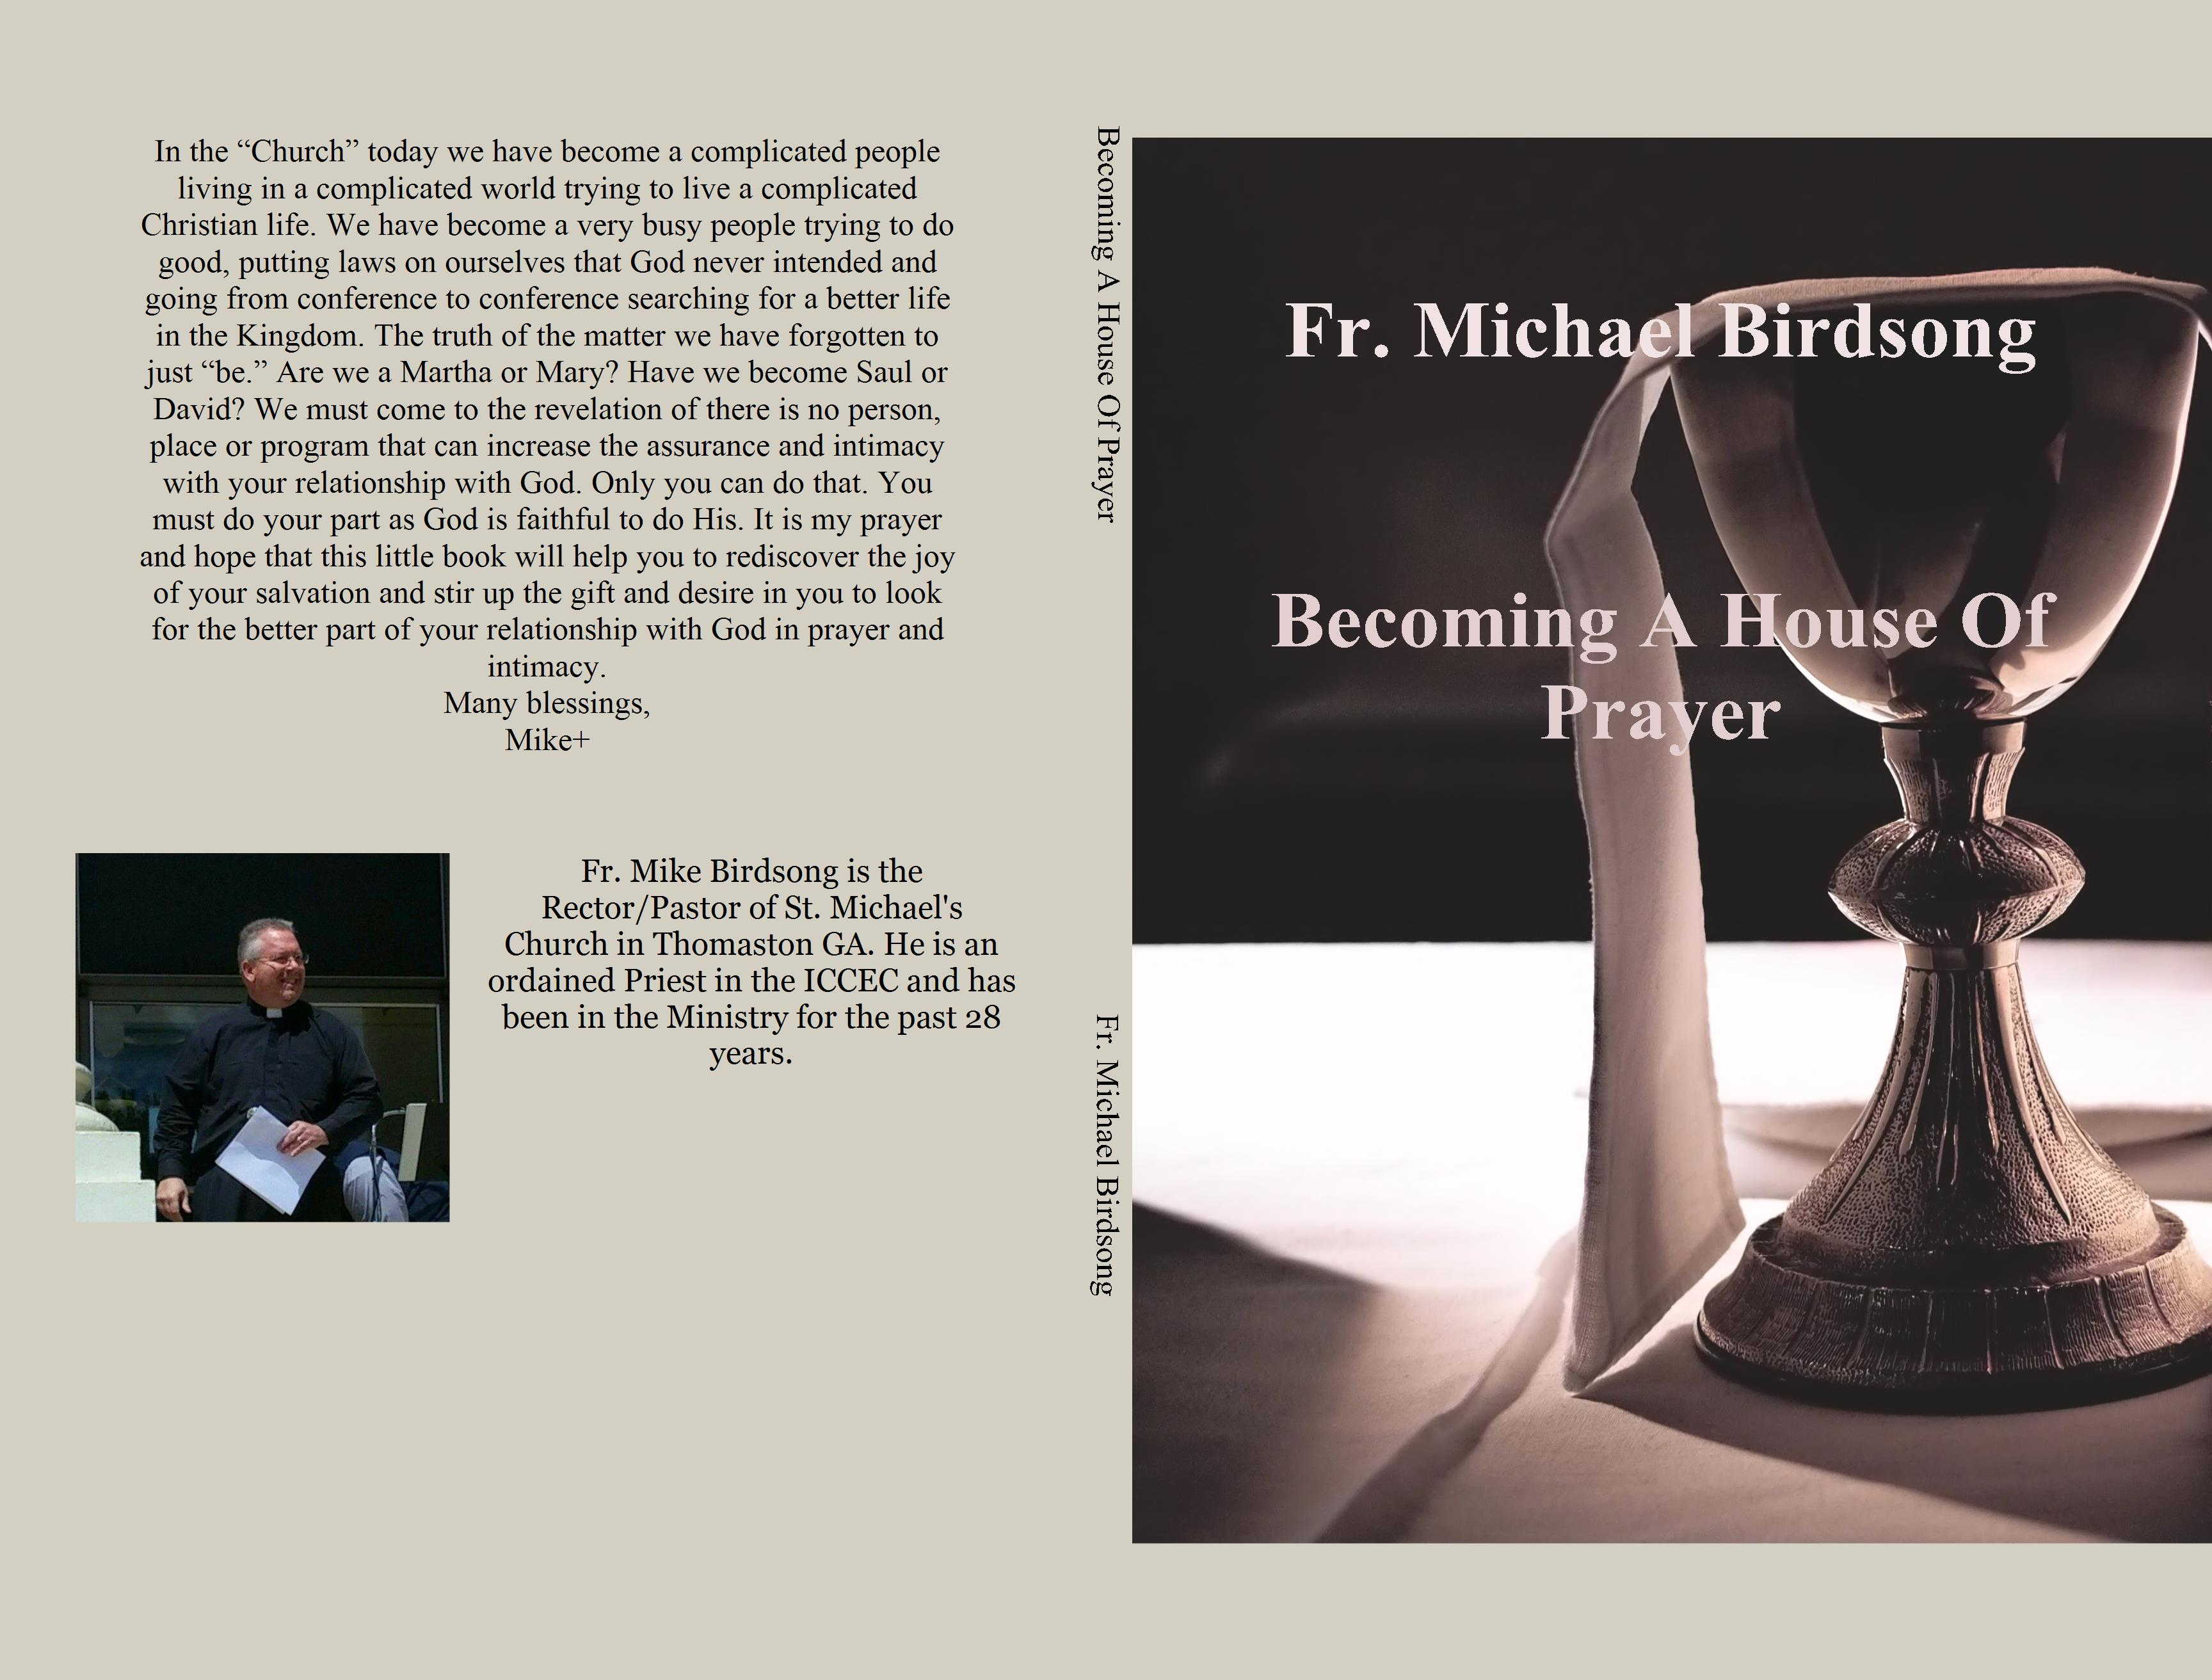 Becoming A House Of Prayer cover image